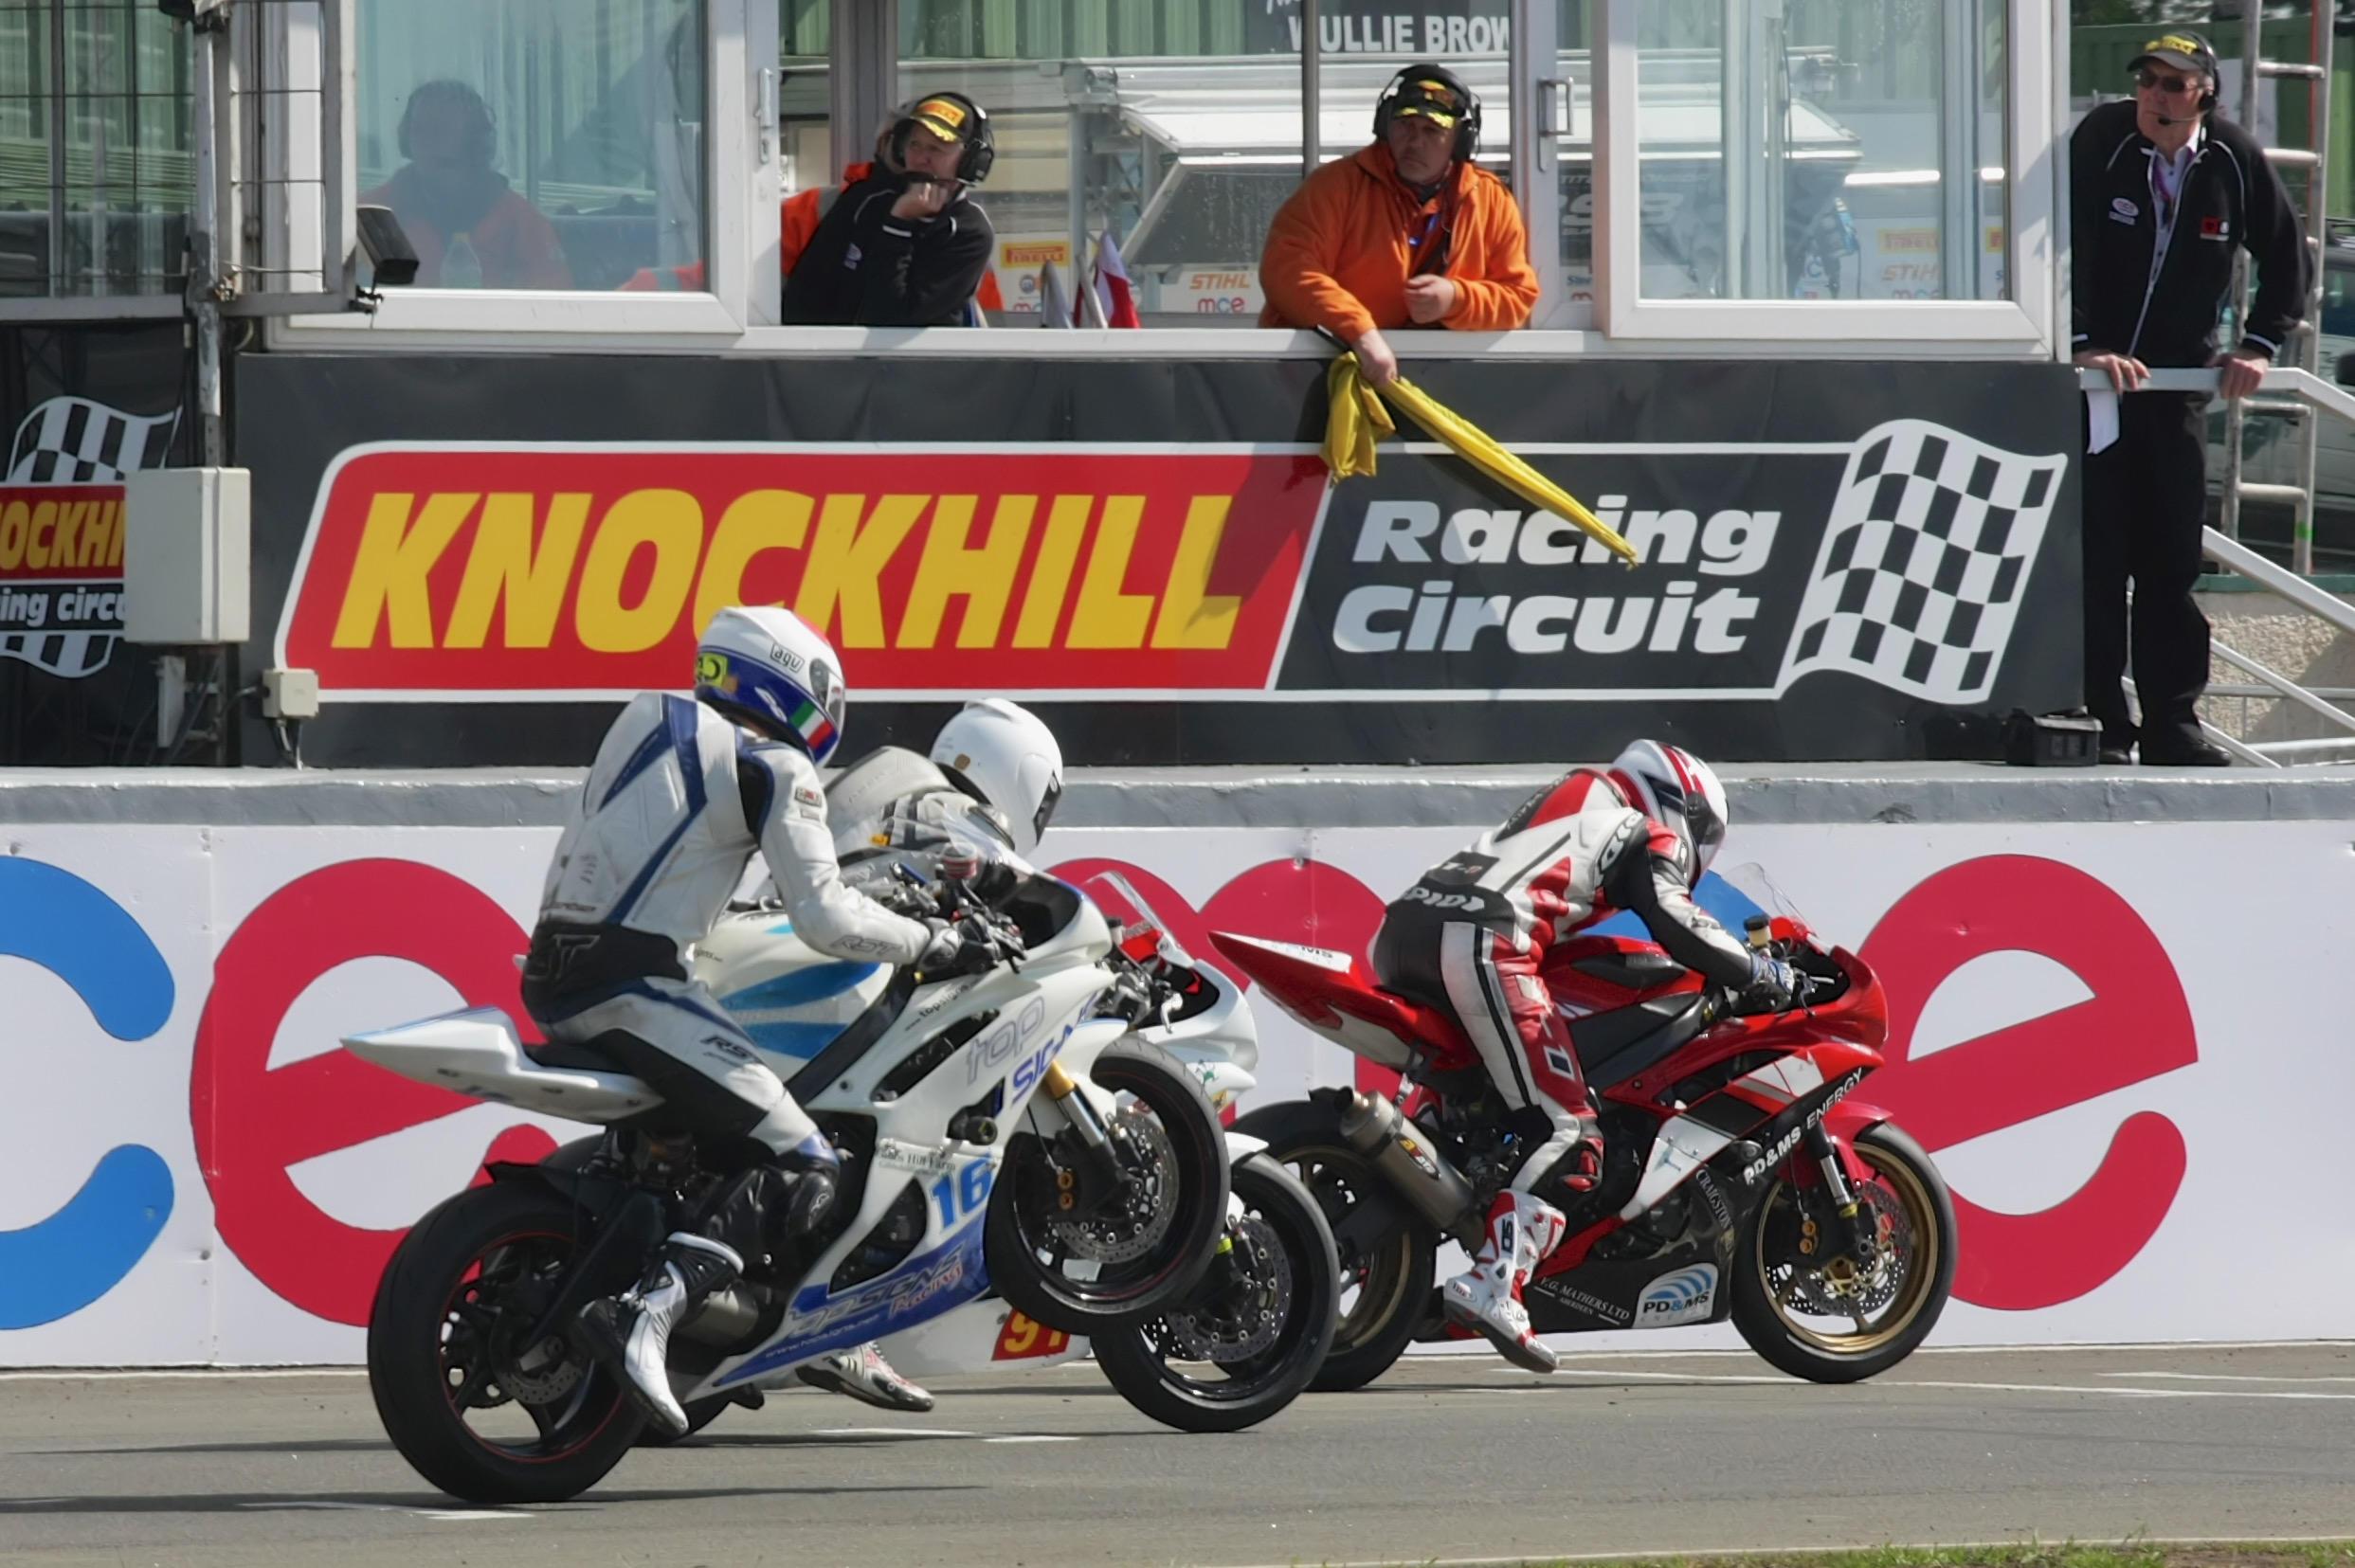 Knockhill BSB limited to 1000 spectators